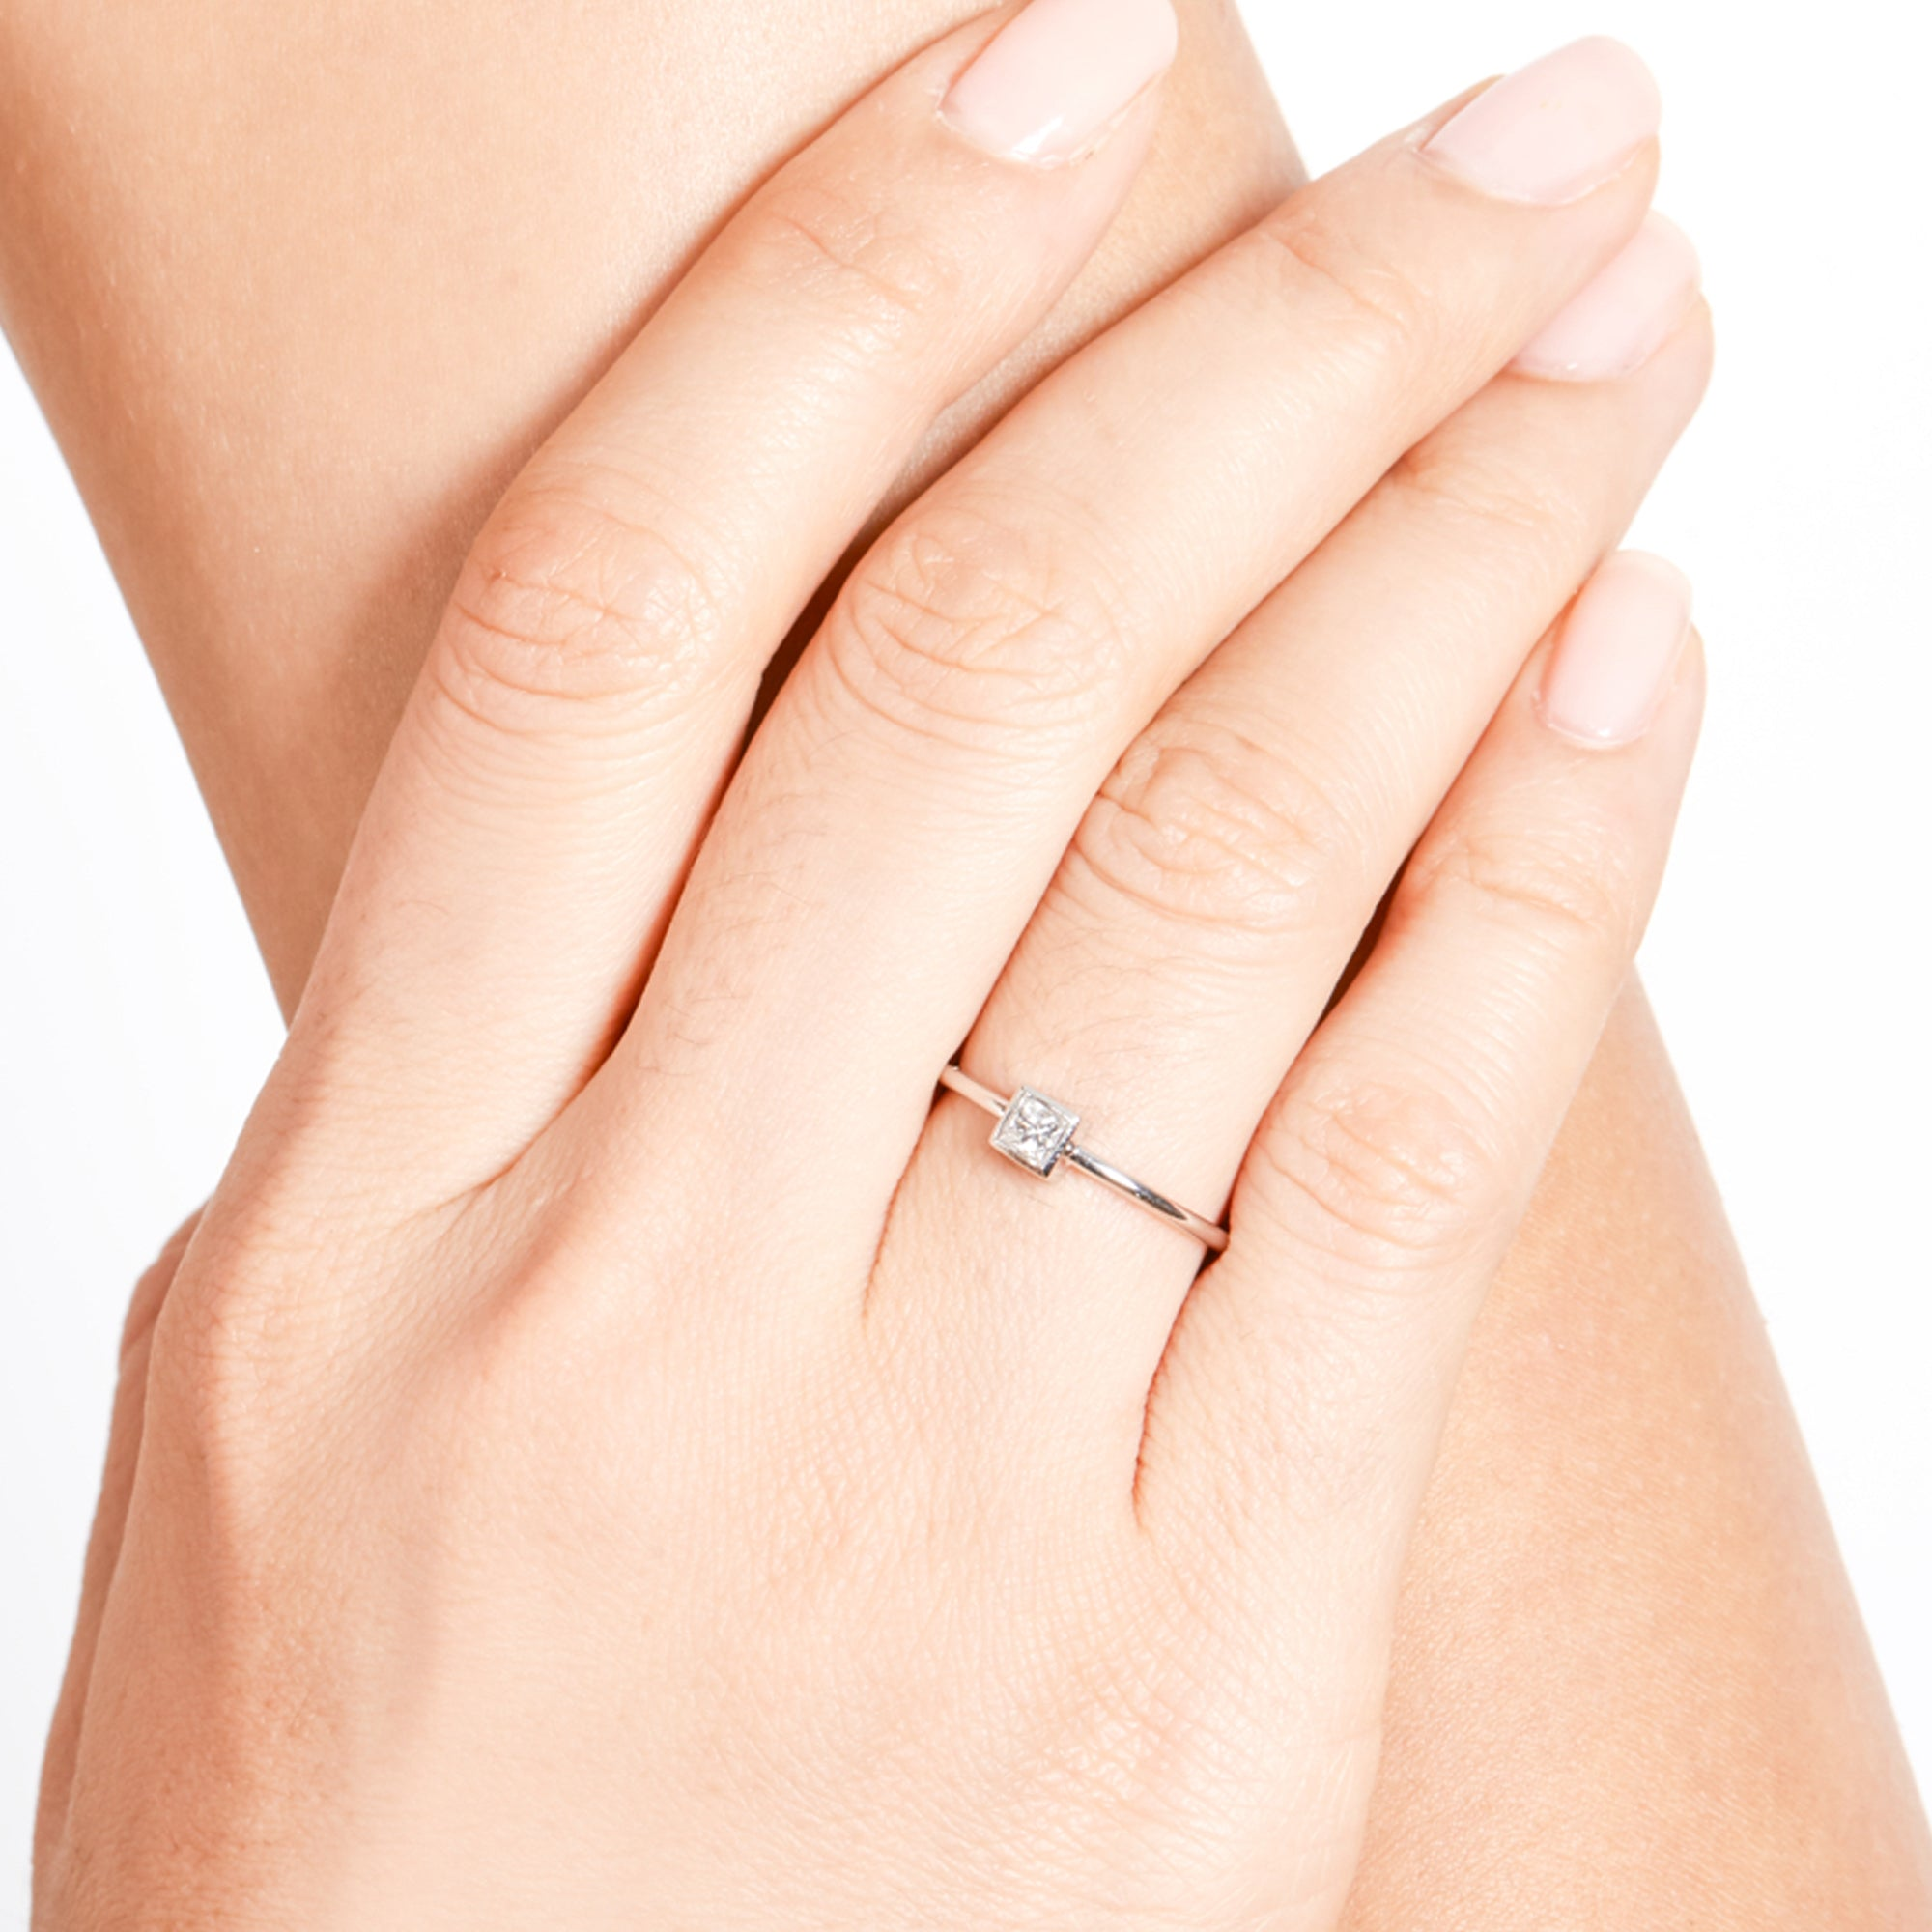 Medium Princess Diamond Ring